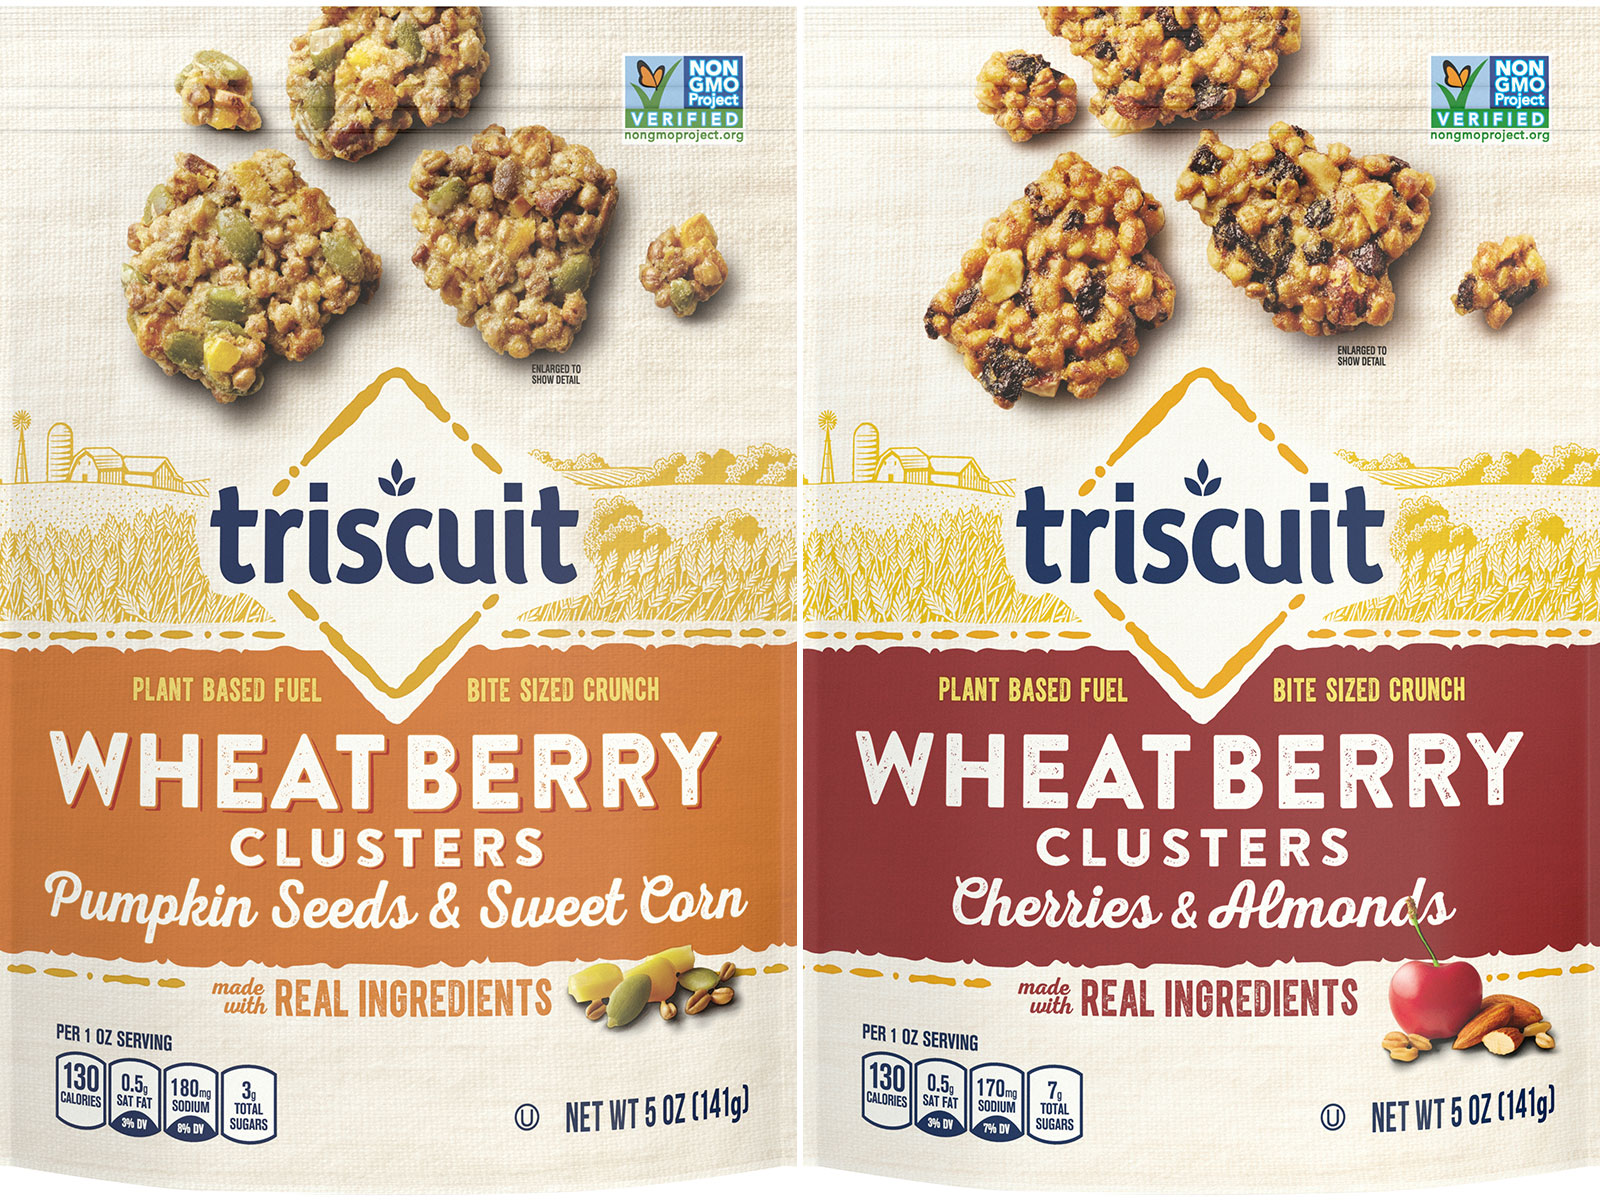 Triscuit Launches Wheatberry Clusters—And No, They're Not Crackers